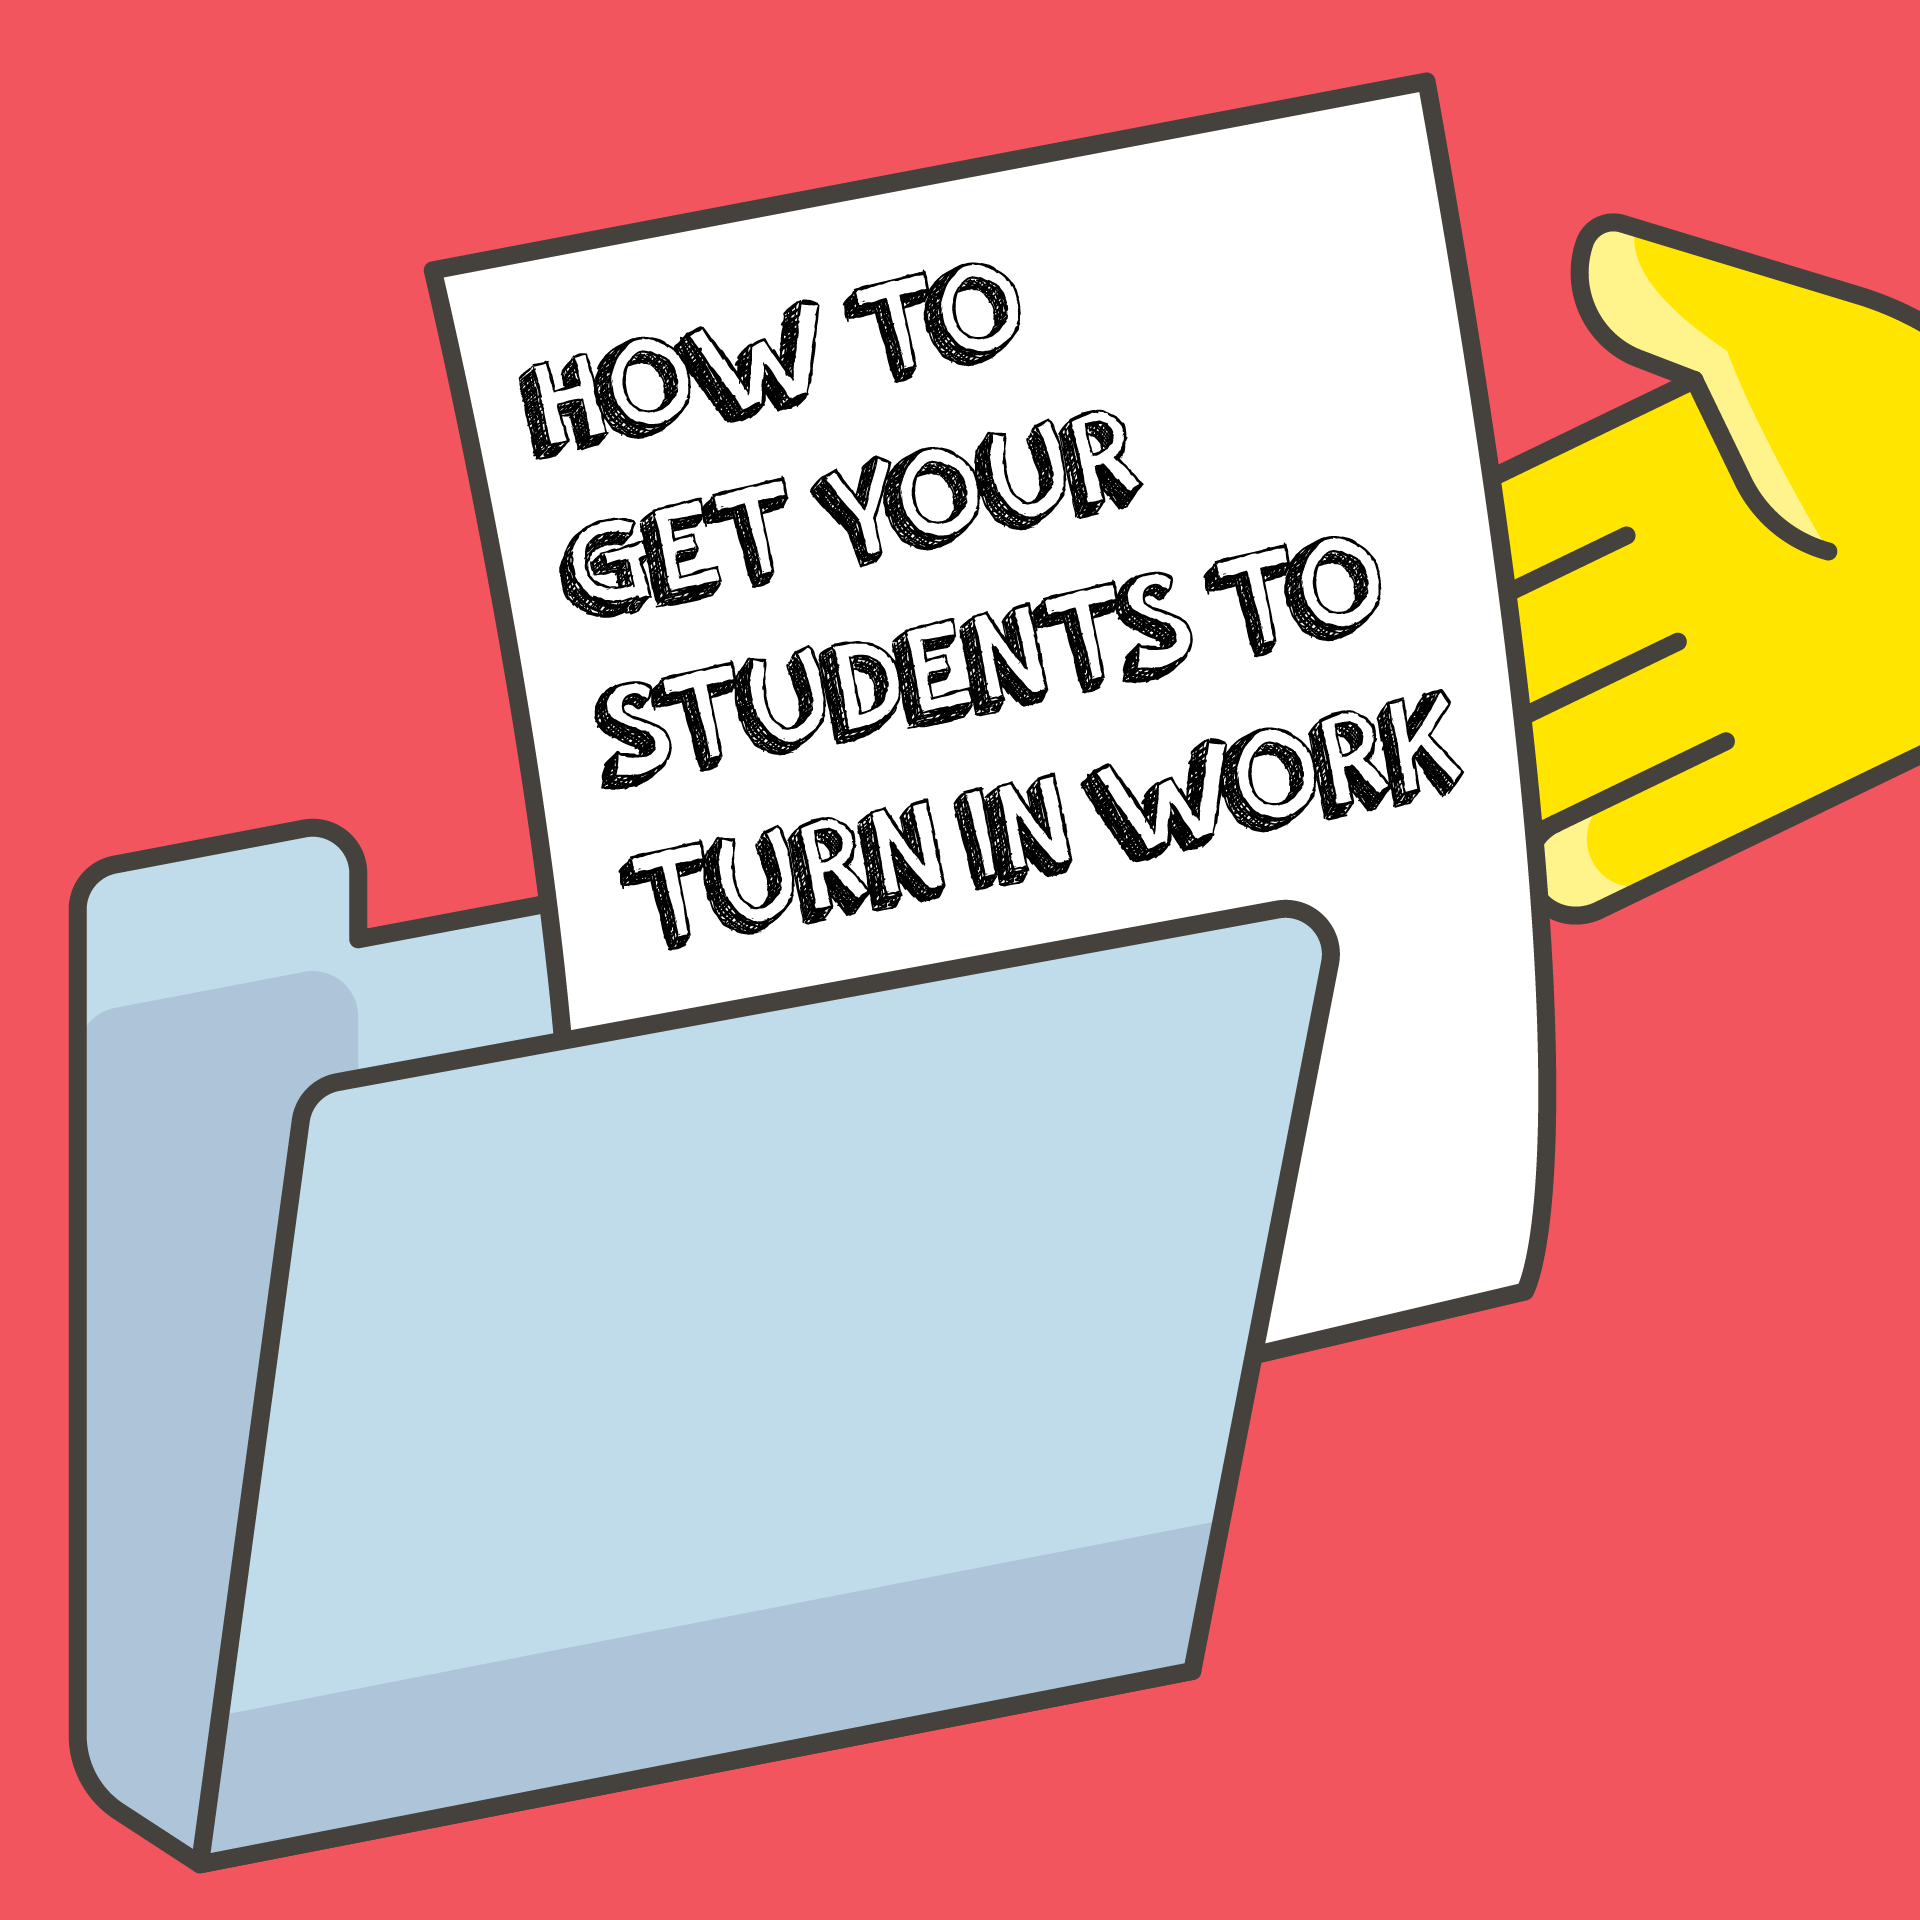 How-to-get-students-to-turn-in-work-01